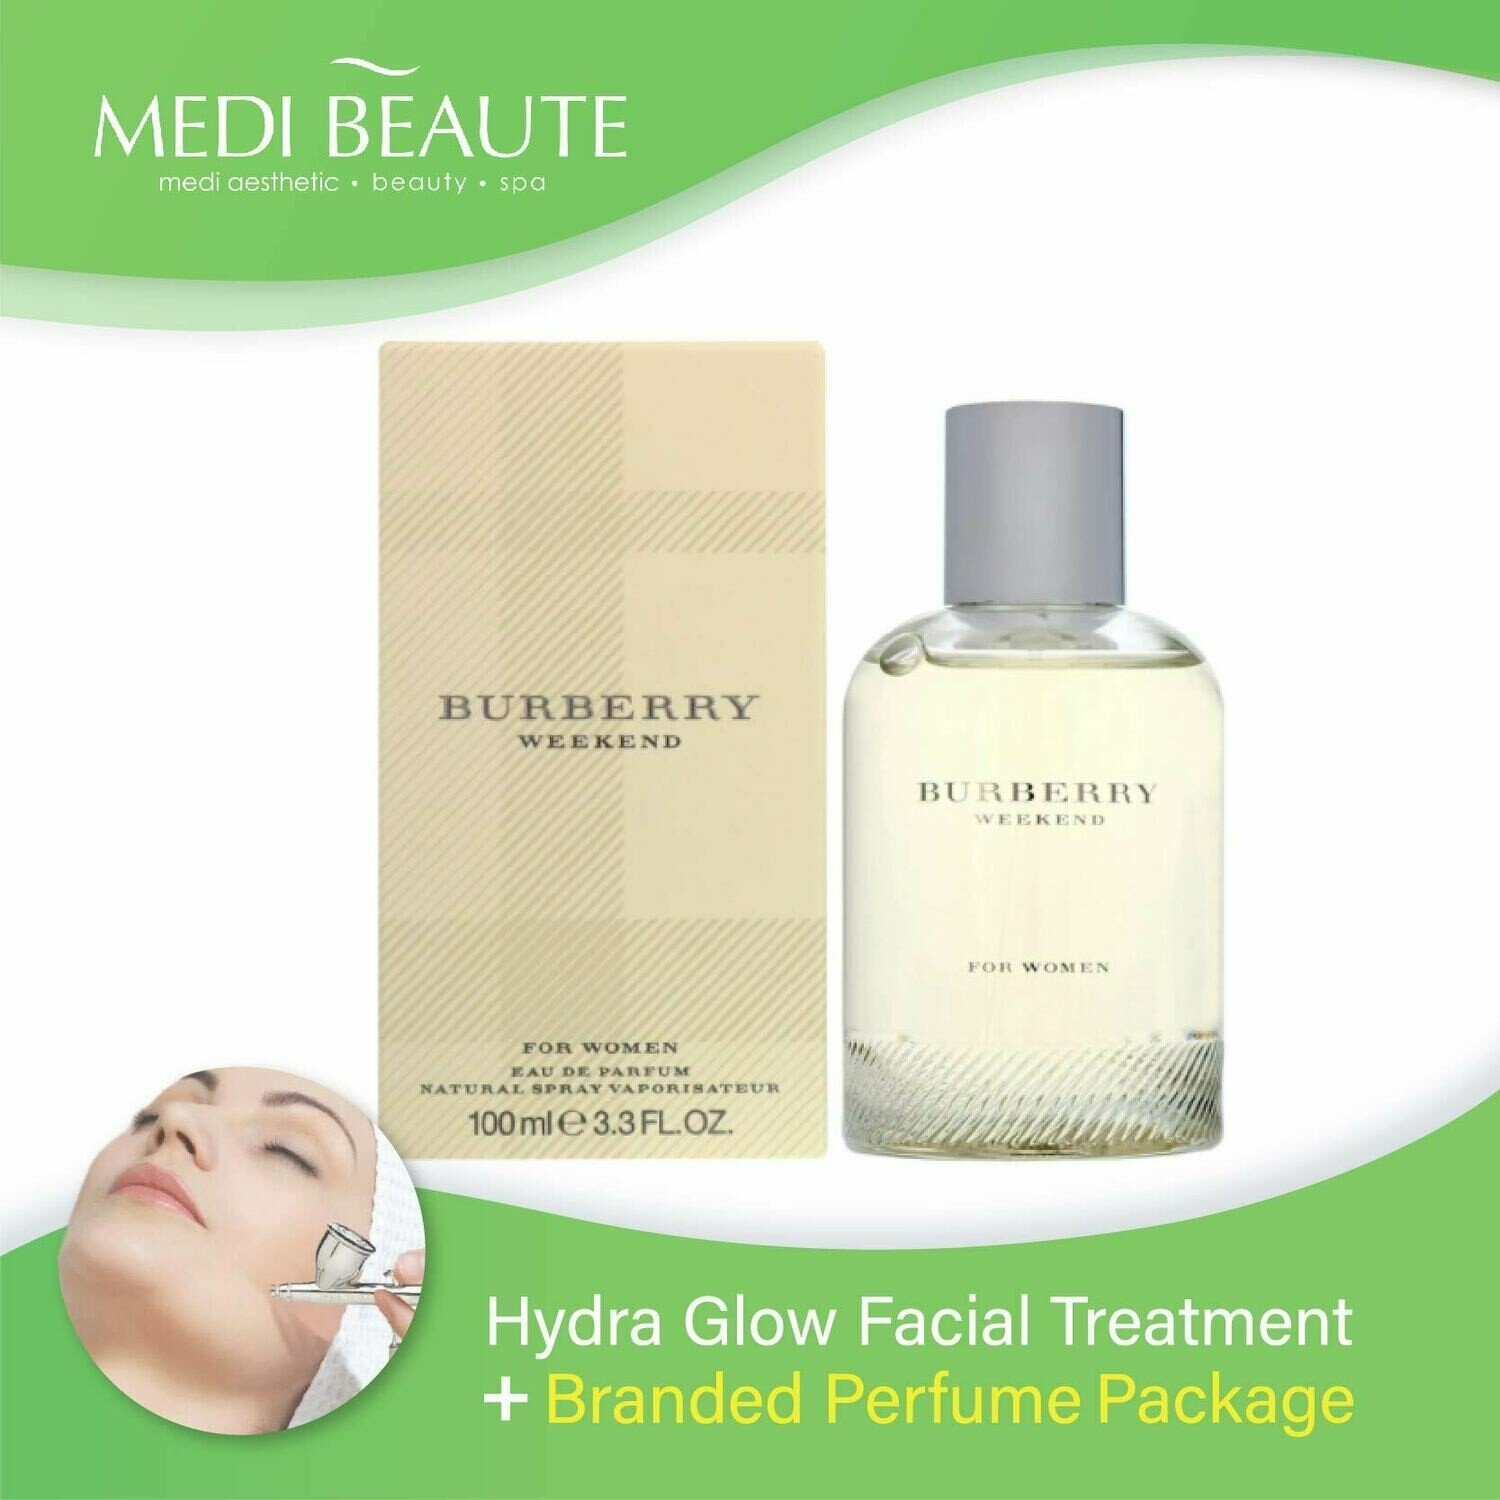 Medi Beaute Hydra Glow Facial + Branded Perfume ( Burberry Weekend Lady EDP 100ml) Package